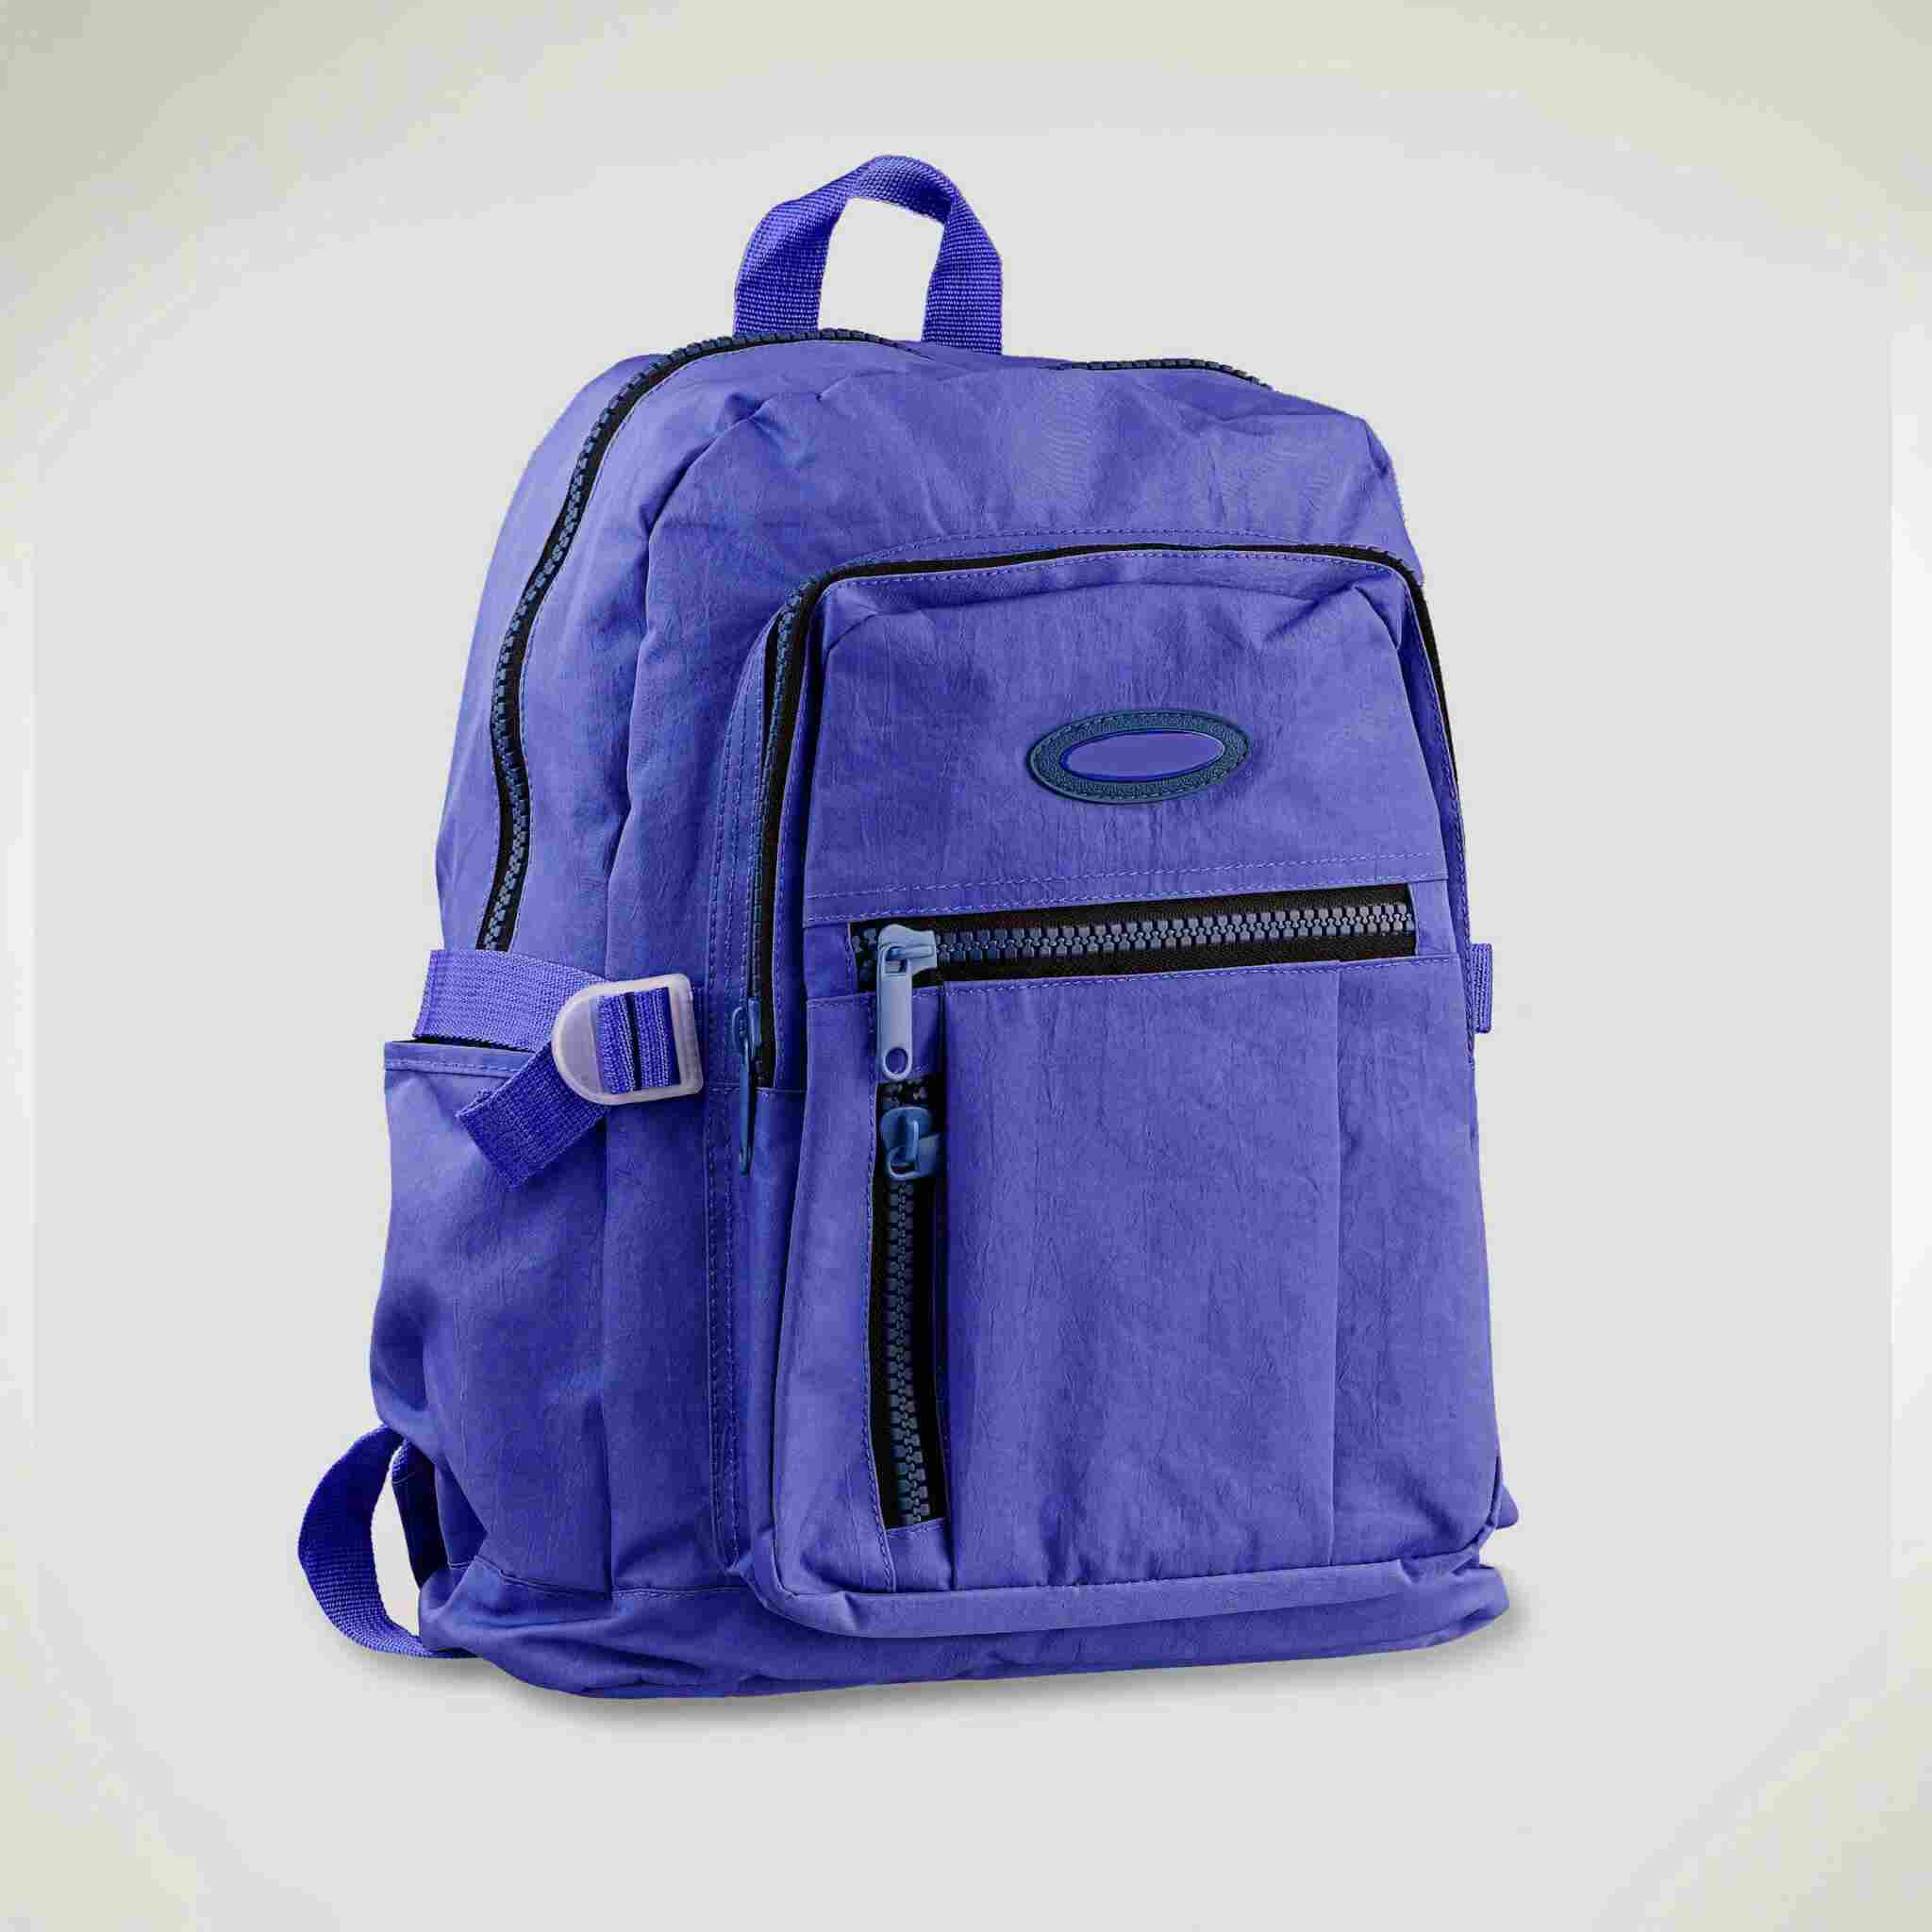 a662f5cd3b58 Blue And Purple Backpack- Fenix Toulouse Handball